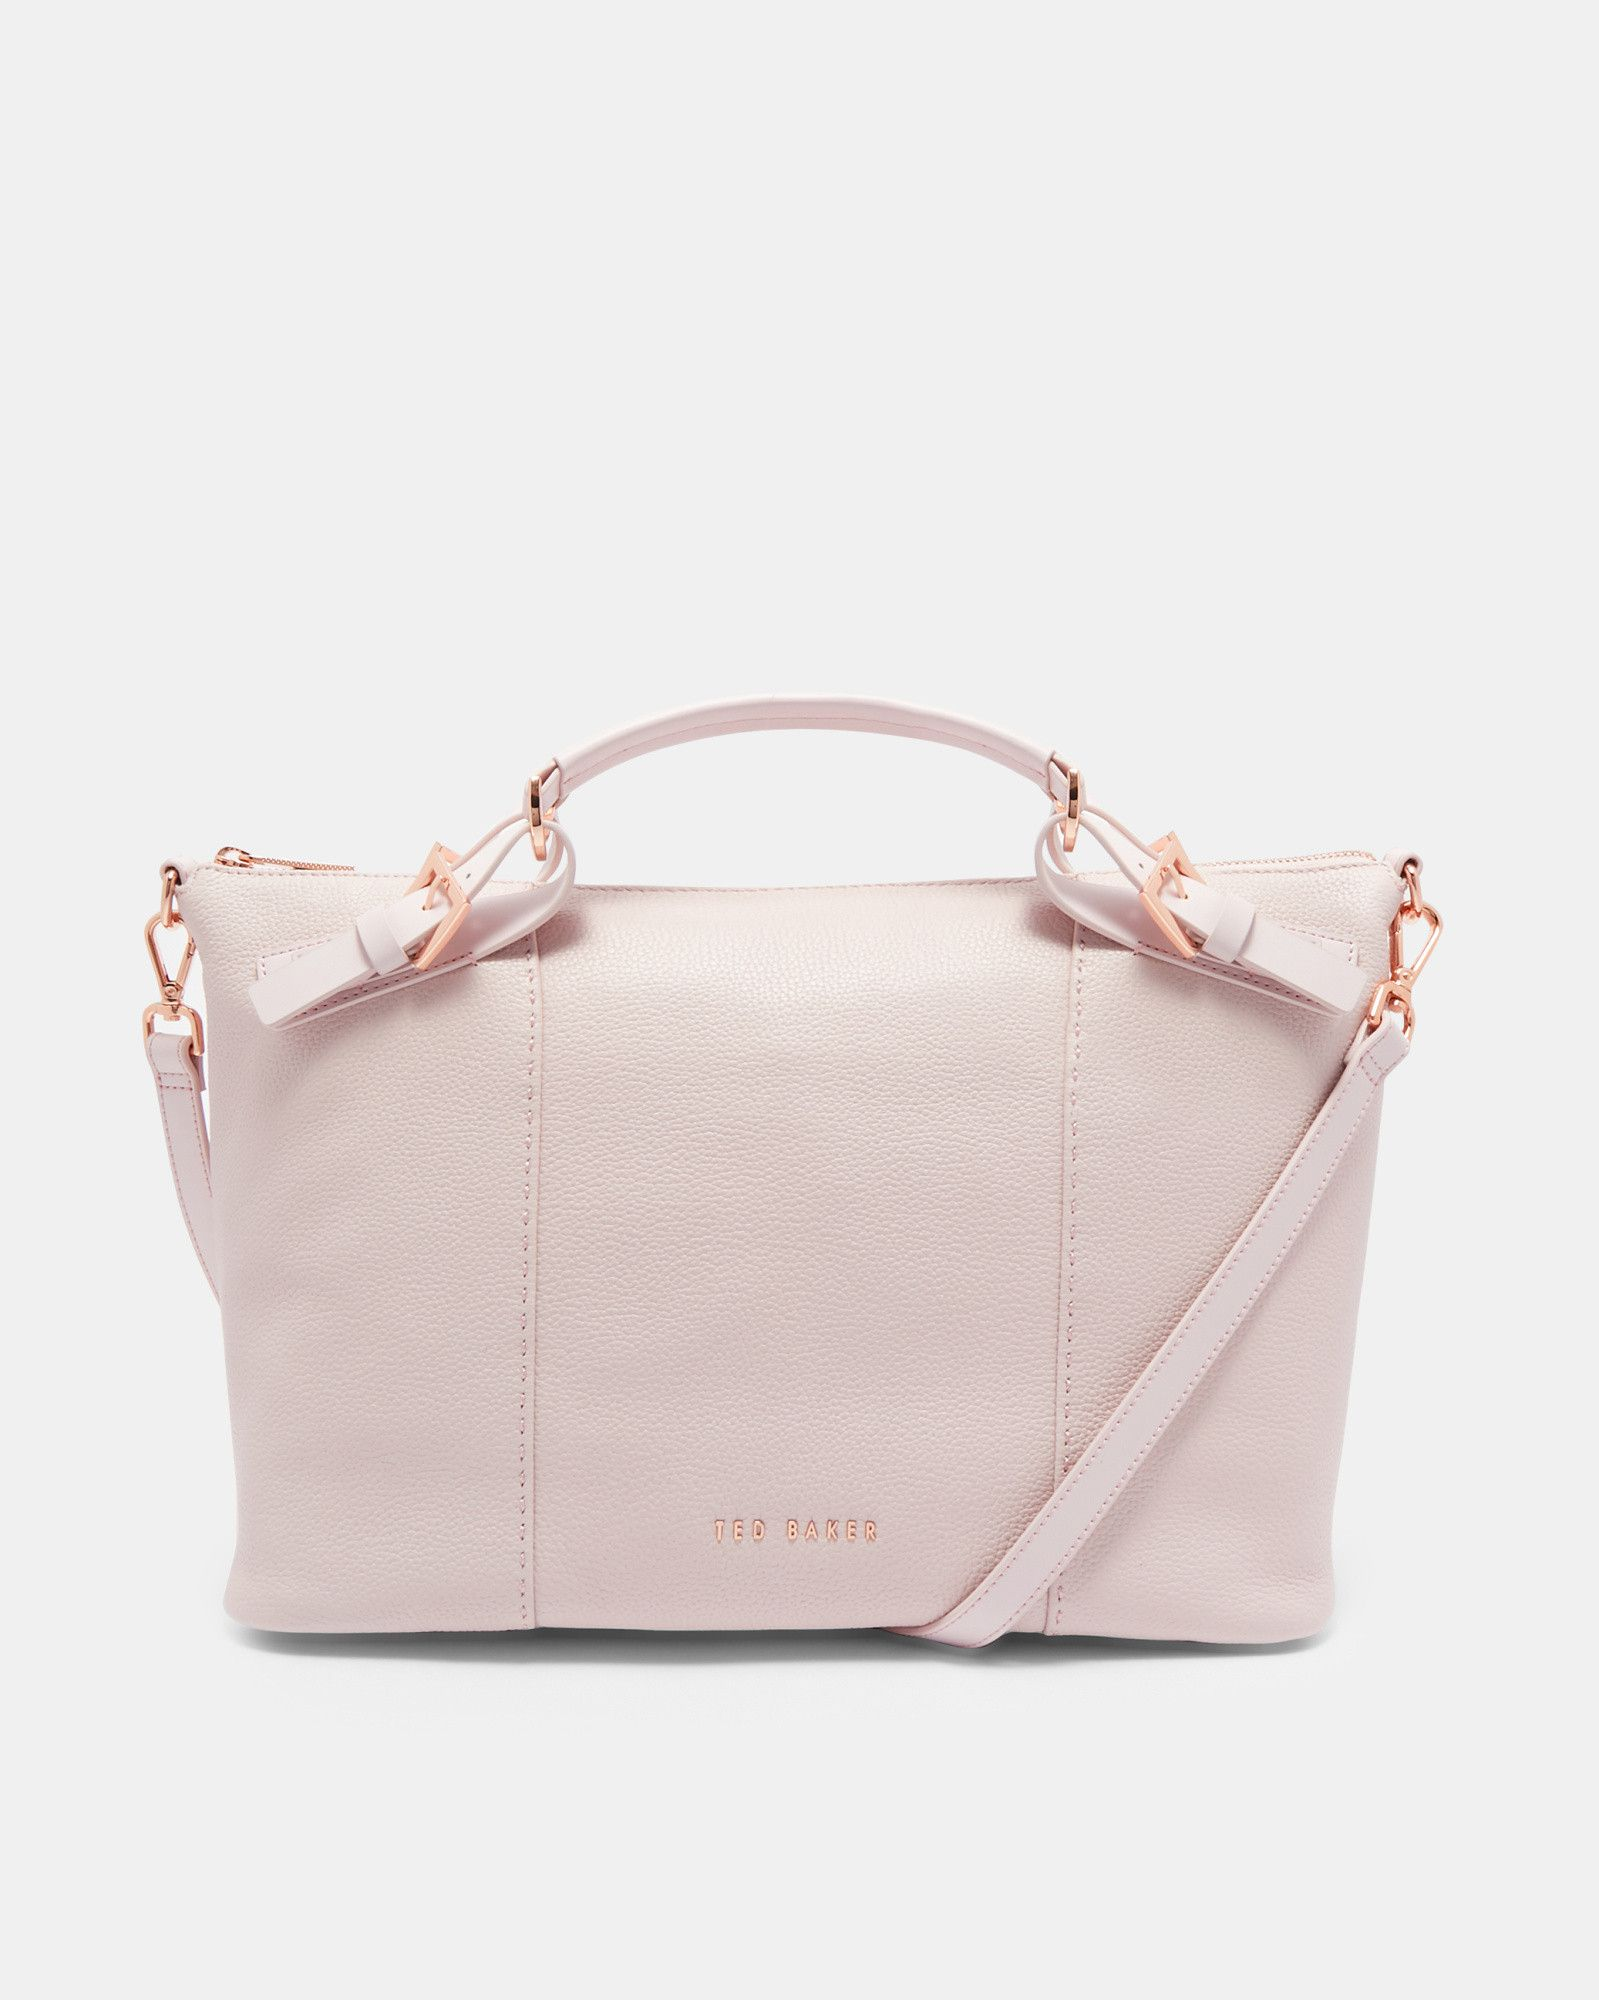 f16e659a78a Ted Baker Bridle handle large leather tote bag | Products | Large ...